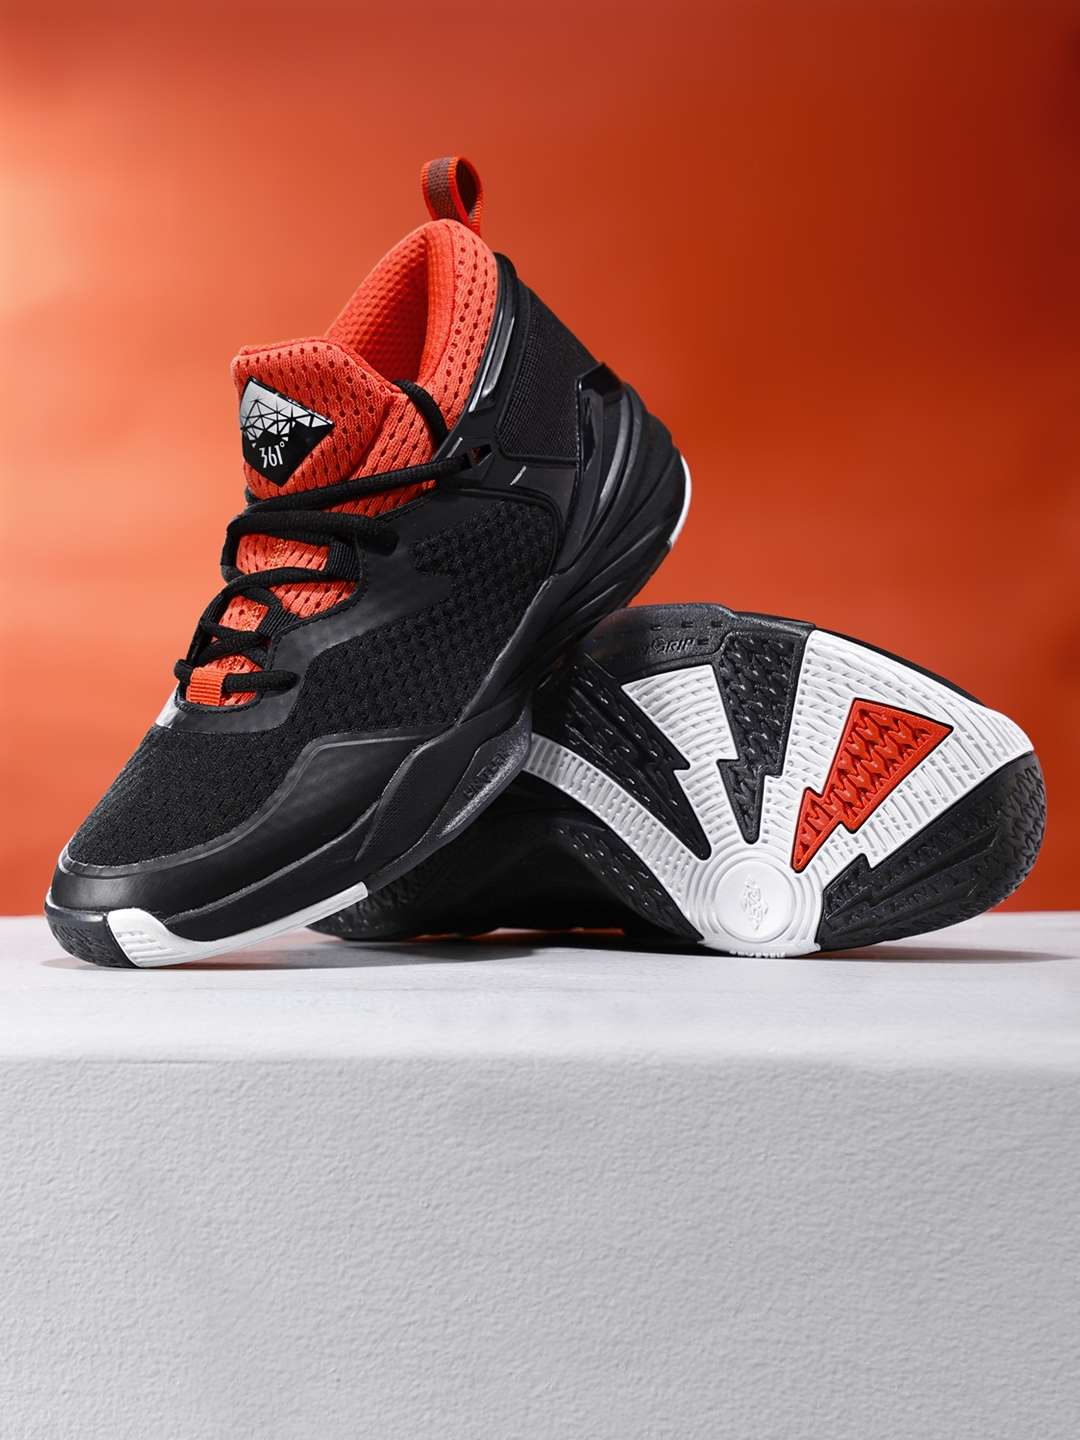 00f87495f55 Buy 361 Degree Men Black Professional Basketball Shoes - Sports ...